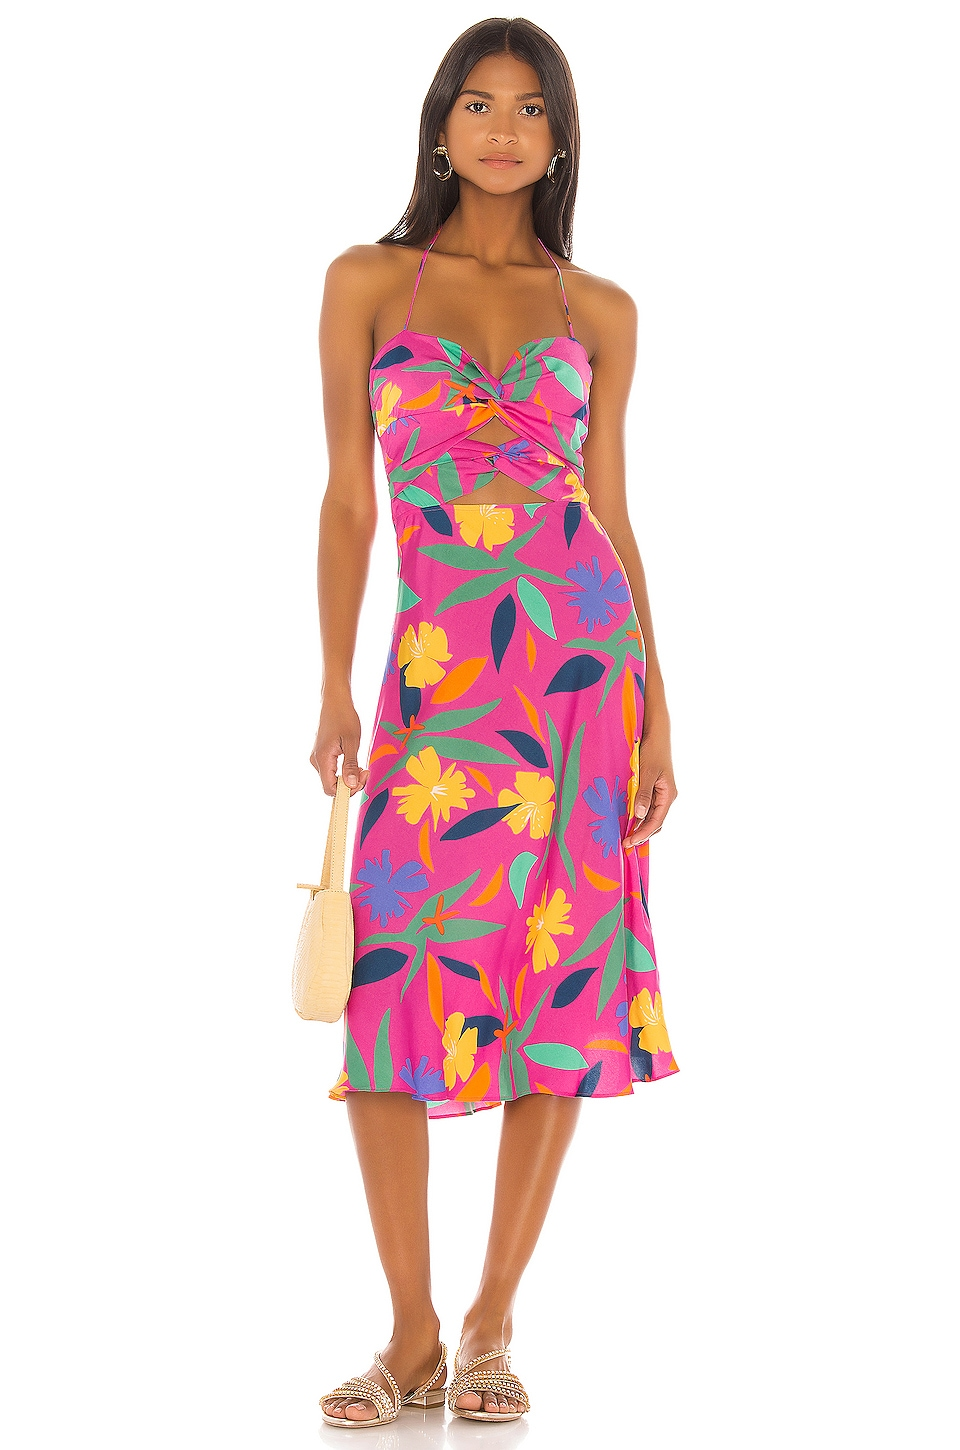 LPA Emilia Dress in Cyndi Floral